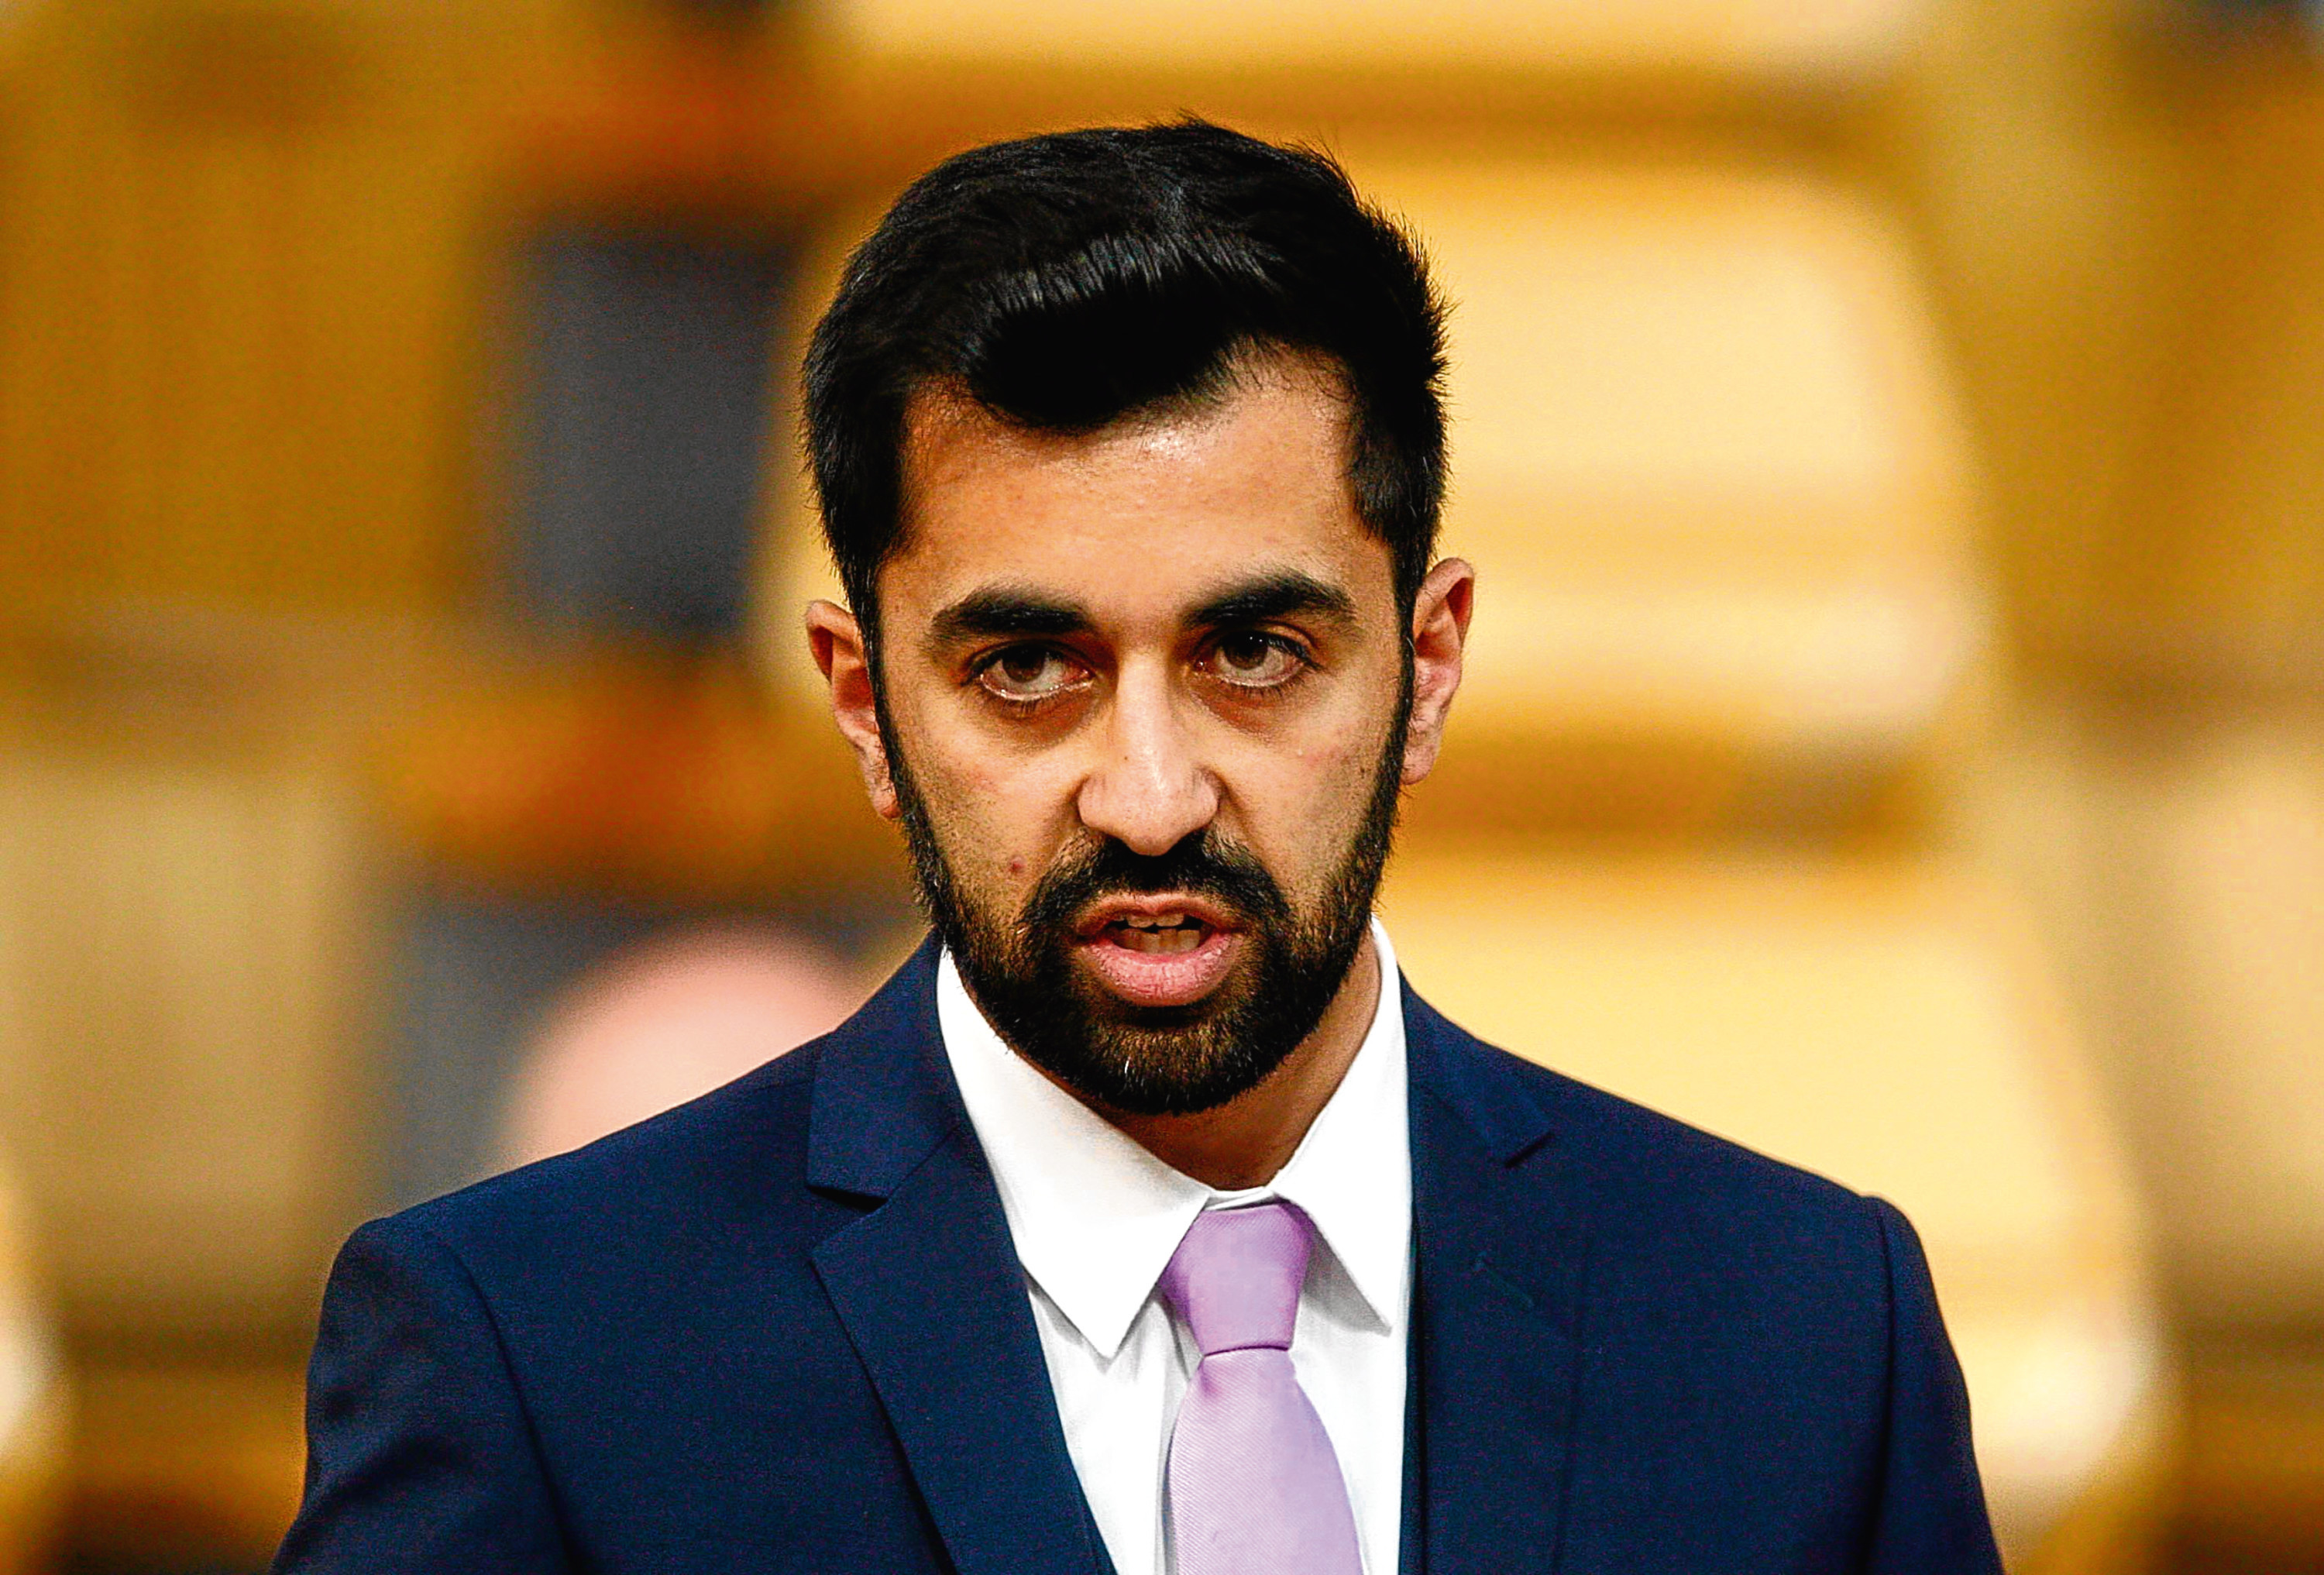 Humza Yousaf MSP (Andrew Cowan/Scottish Parliament)